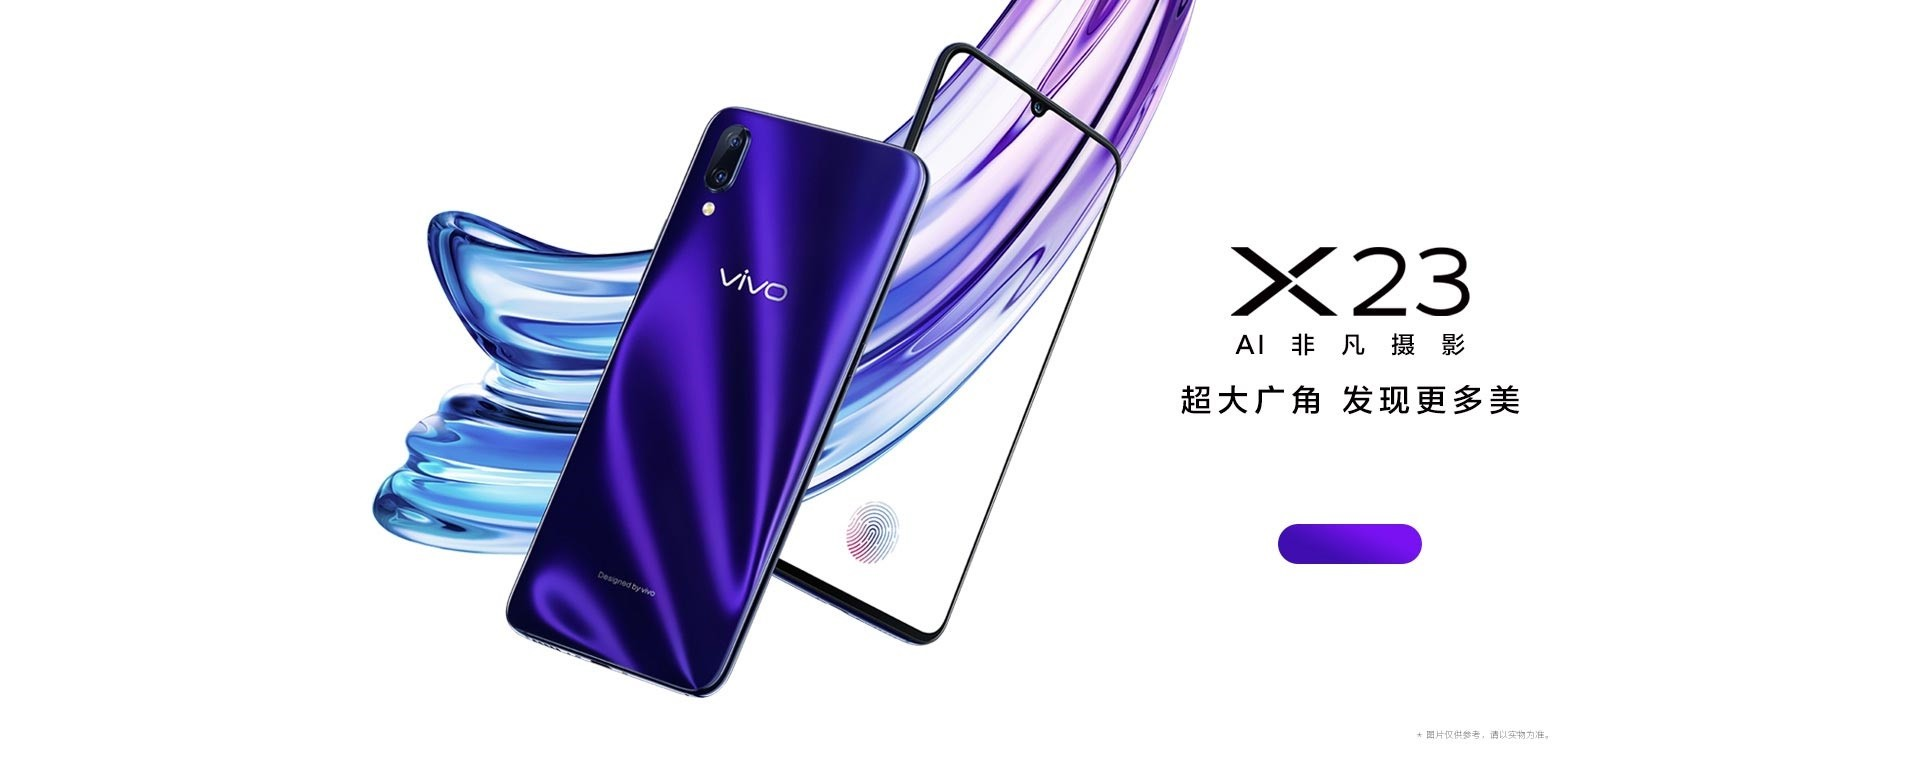 Vivo X23 Official